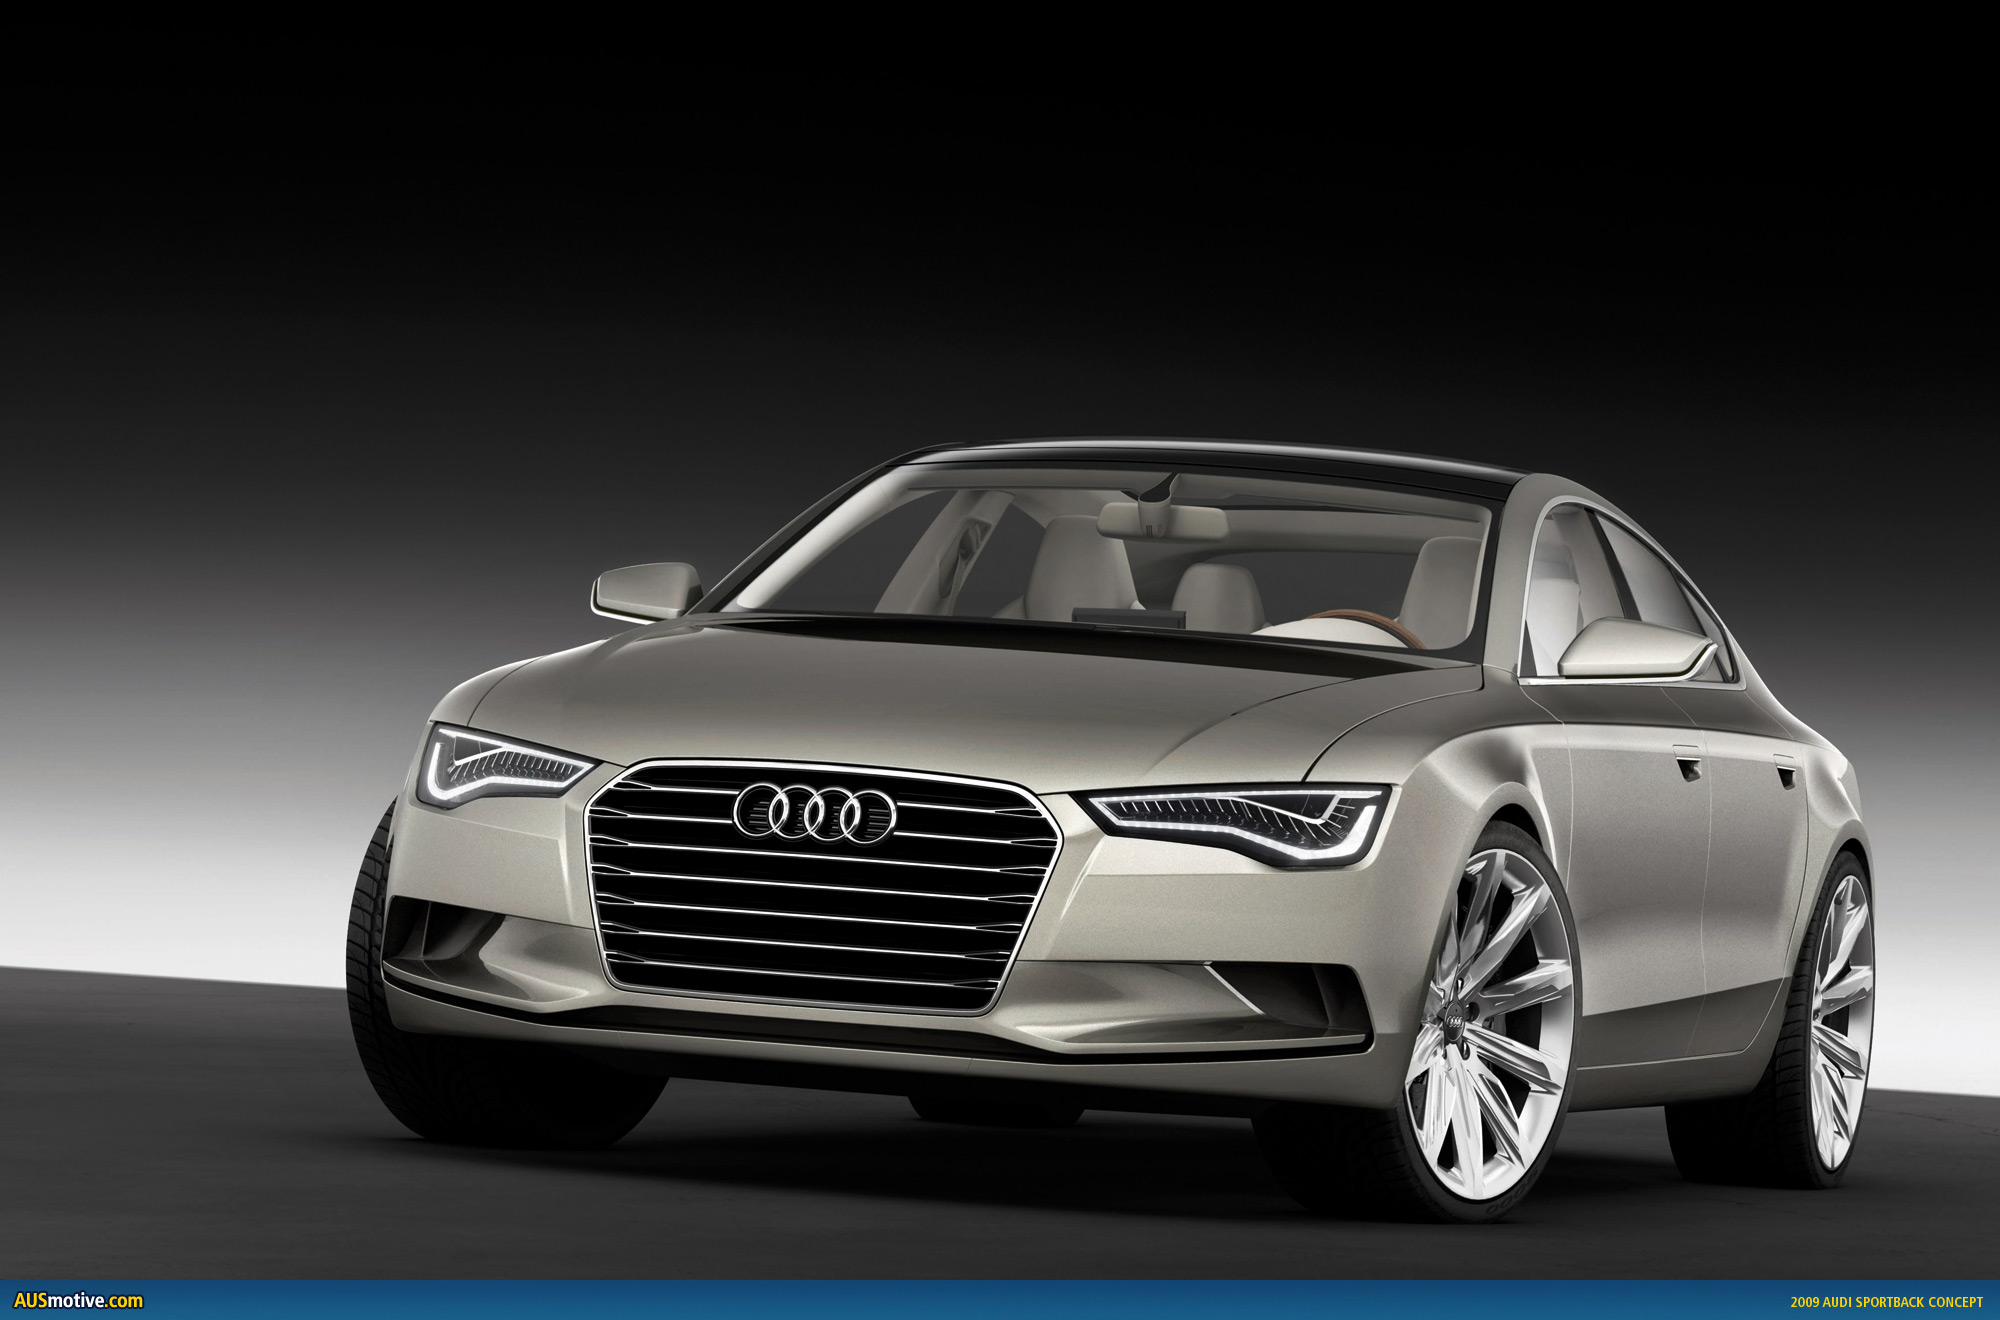 Audi has revealed yet another